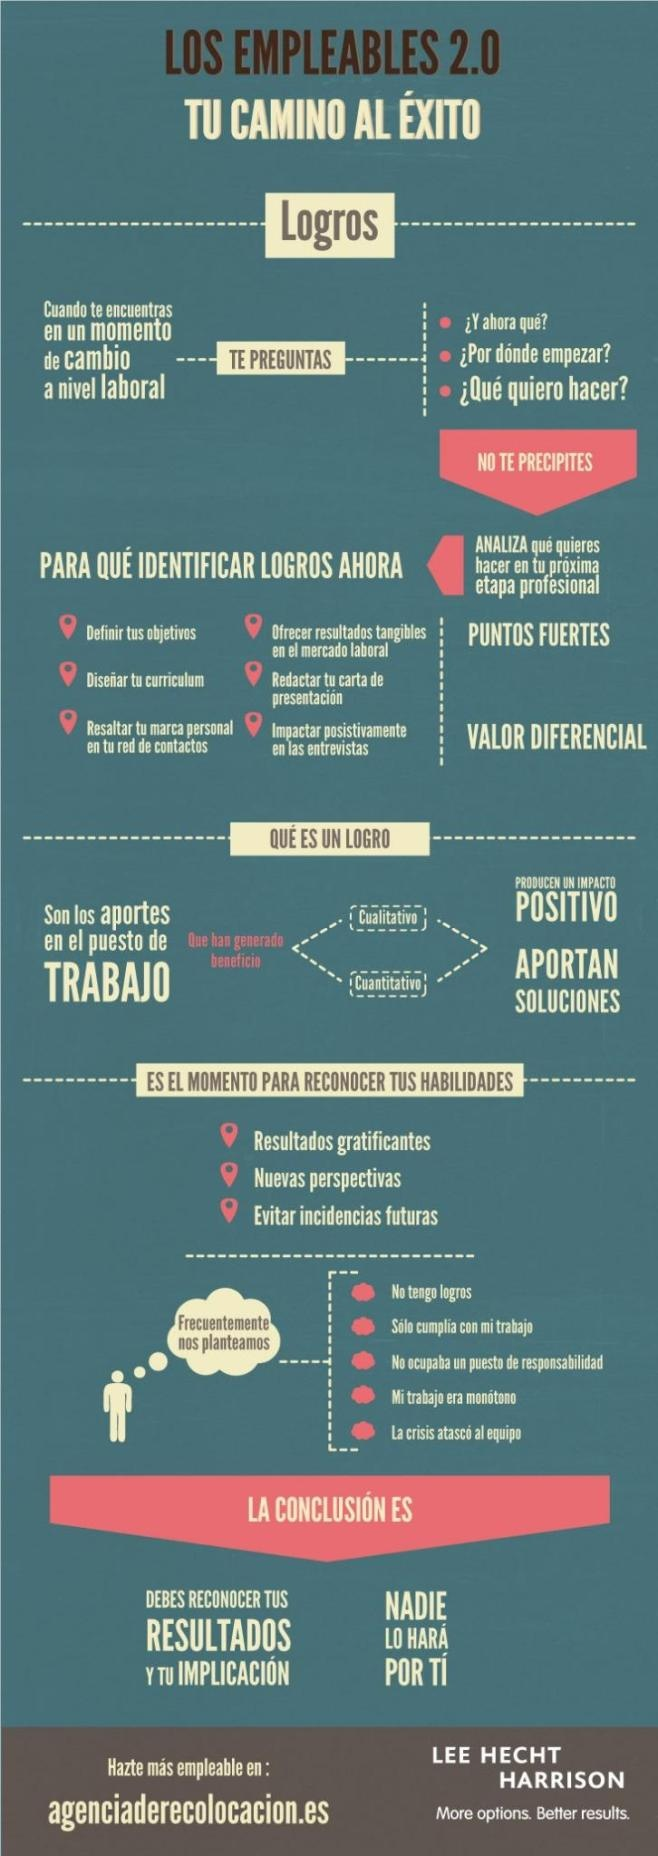 Go to http://www.williamotoole.com for free mlm training. Conoce tus logros para afrontar cambios profesionales